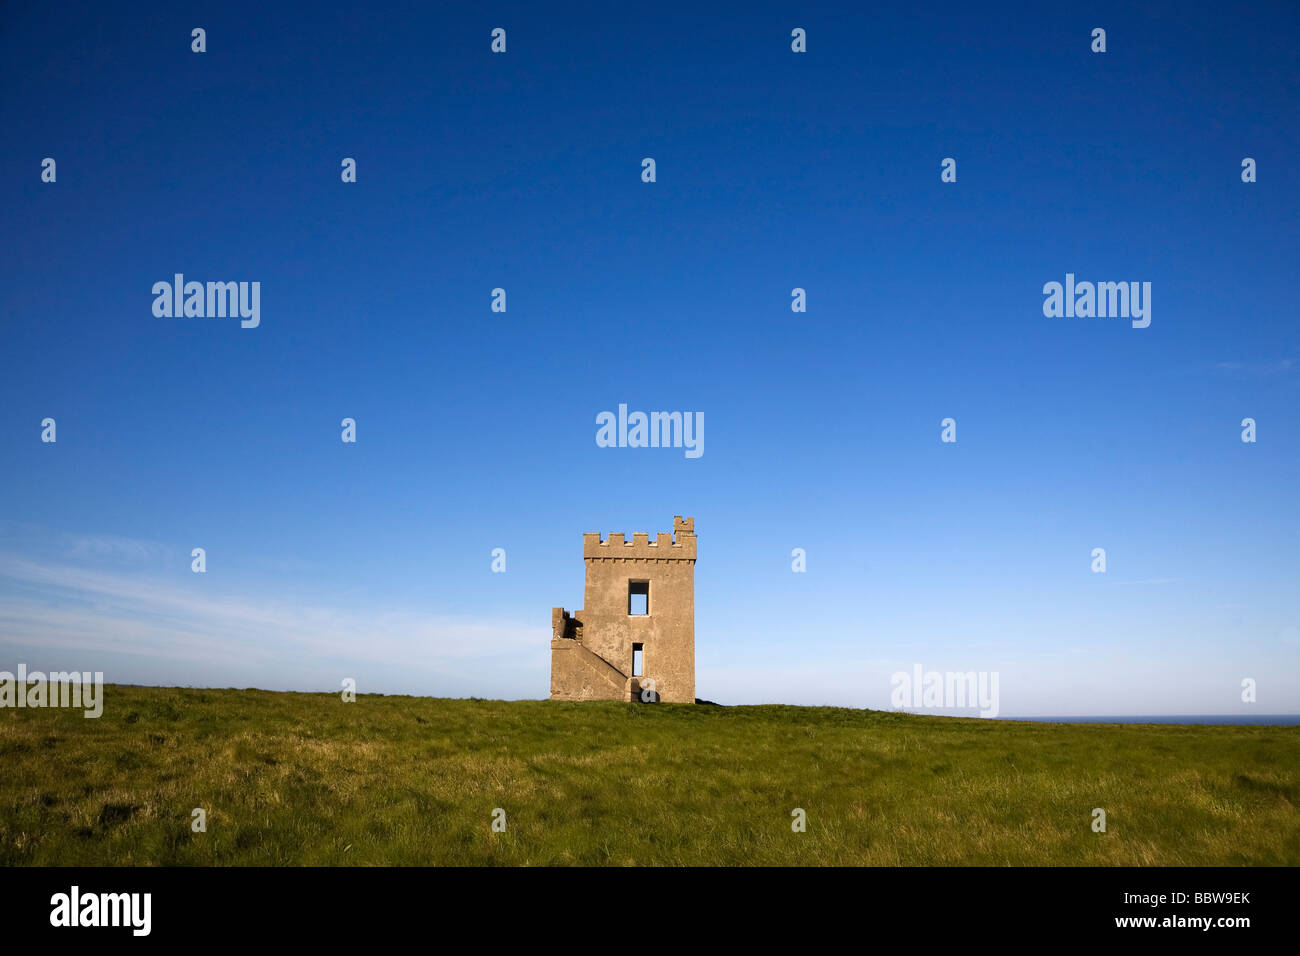 Ardmore Castle Watch Tower and Signal Station, Built 1867, Ardmore, Co Waterford Ireland - Stock Image